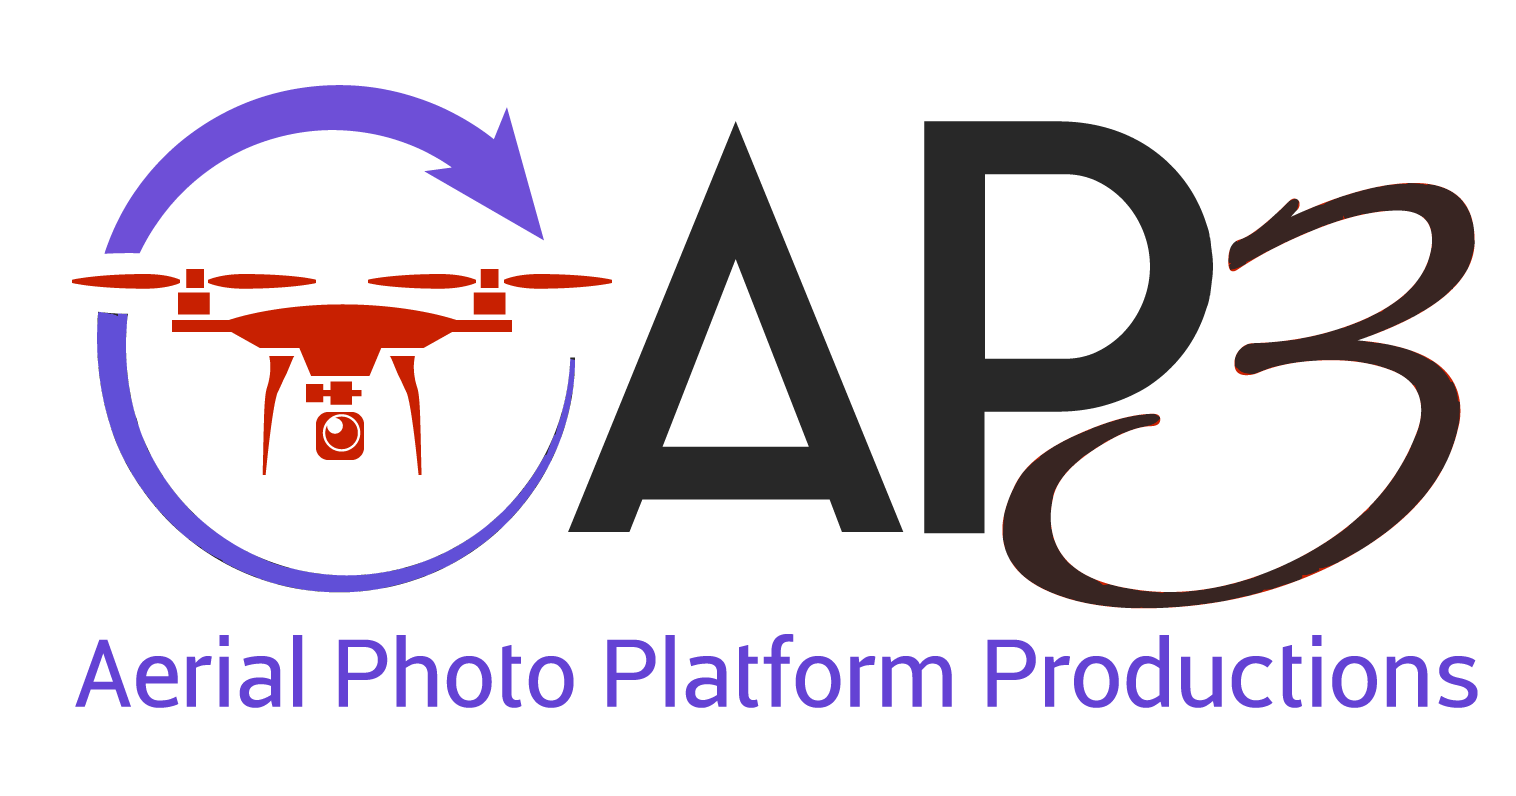 Aerial Photo Platform Productions